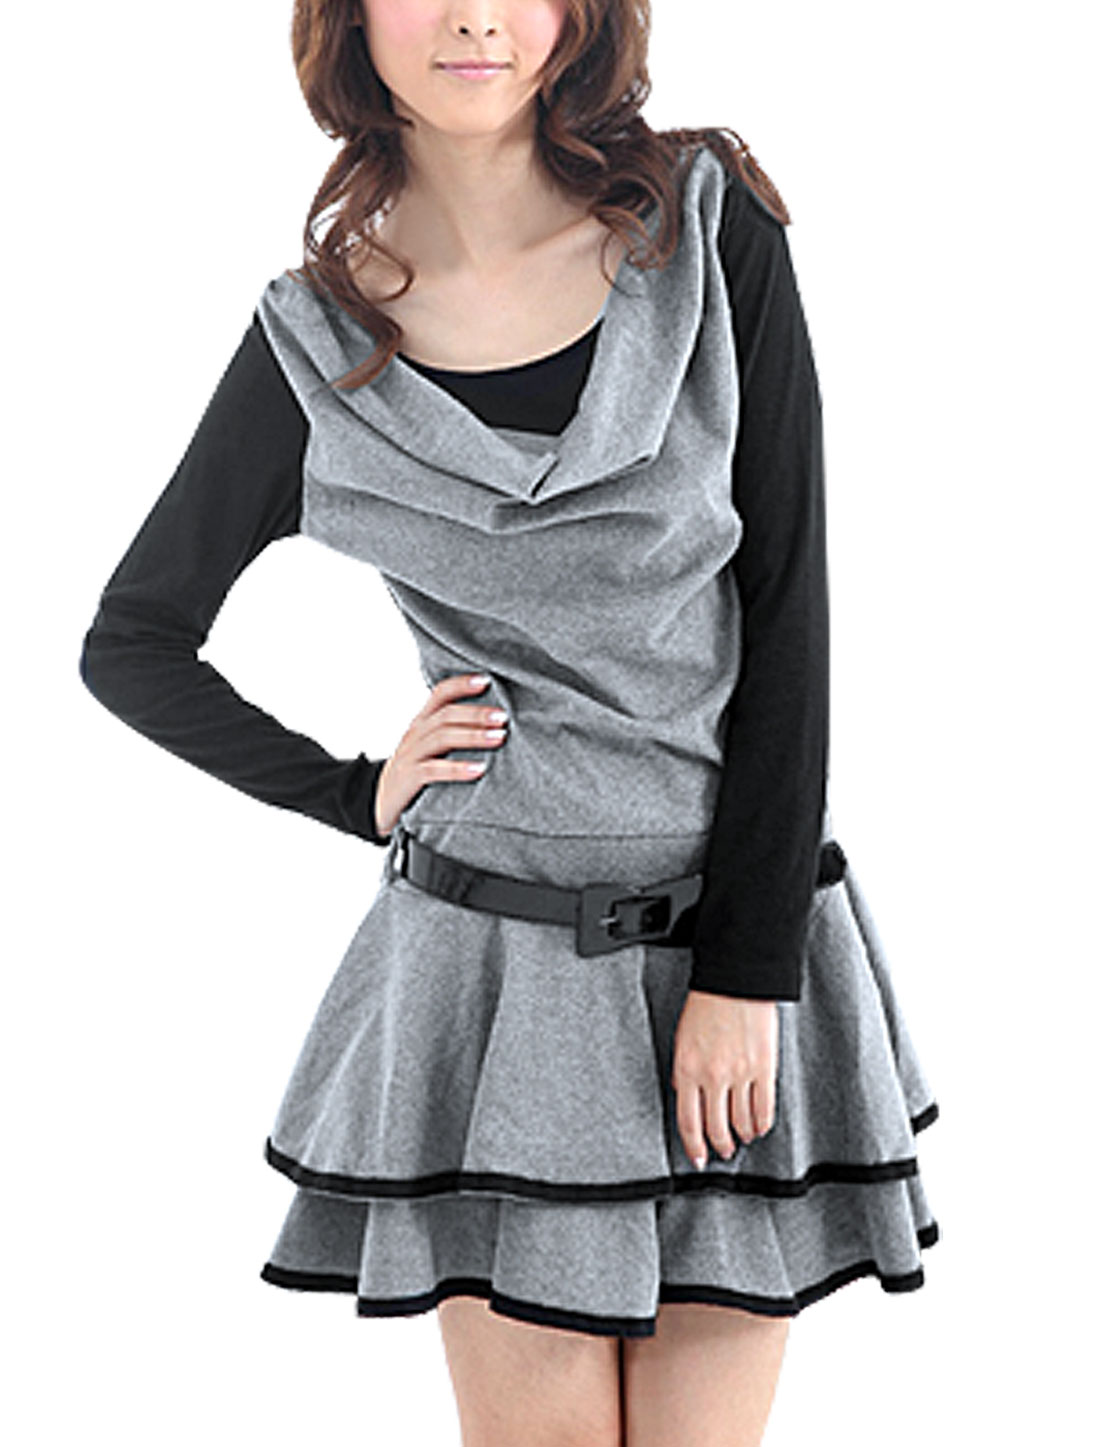 Light Gray Scoop Neck Layered Dresses Mini Dress XS for Women